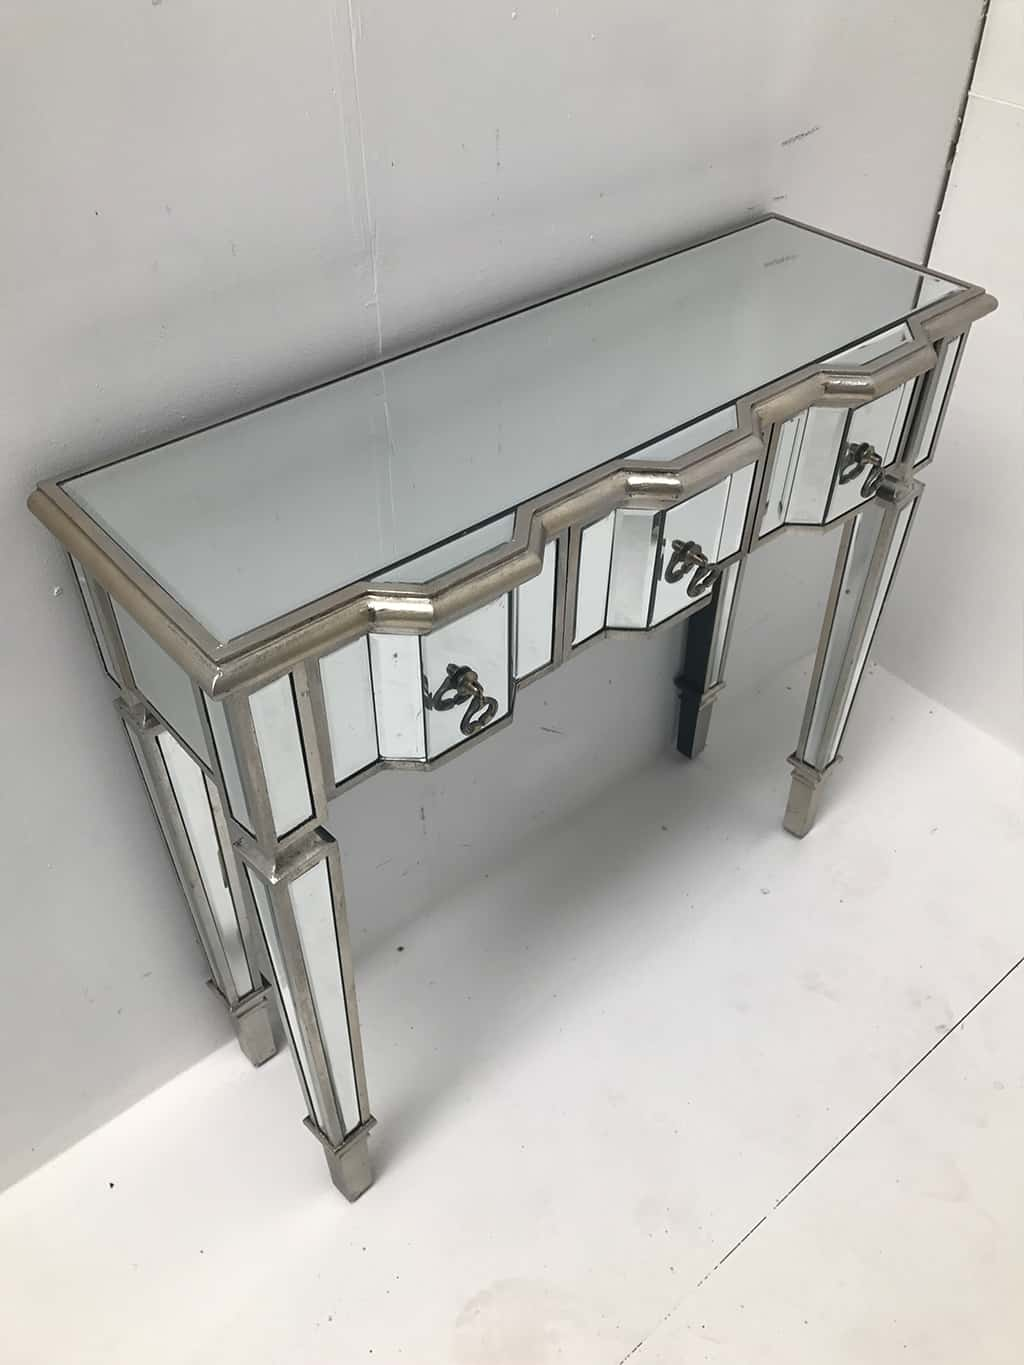 Charleston mirrored console table with 3 drawers, silver wood edging, glass top, tapered legs and drop Ring brass pulls